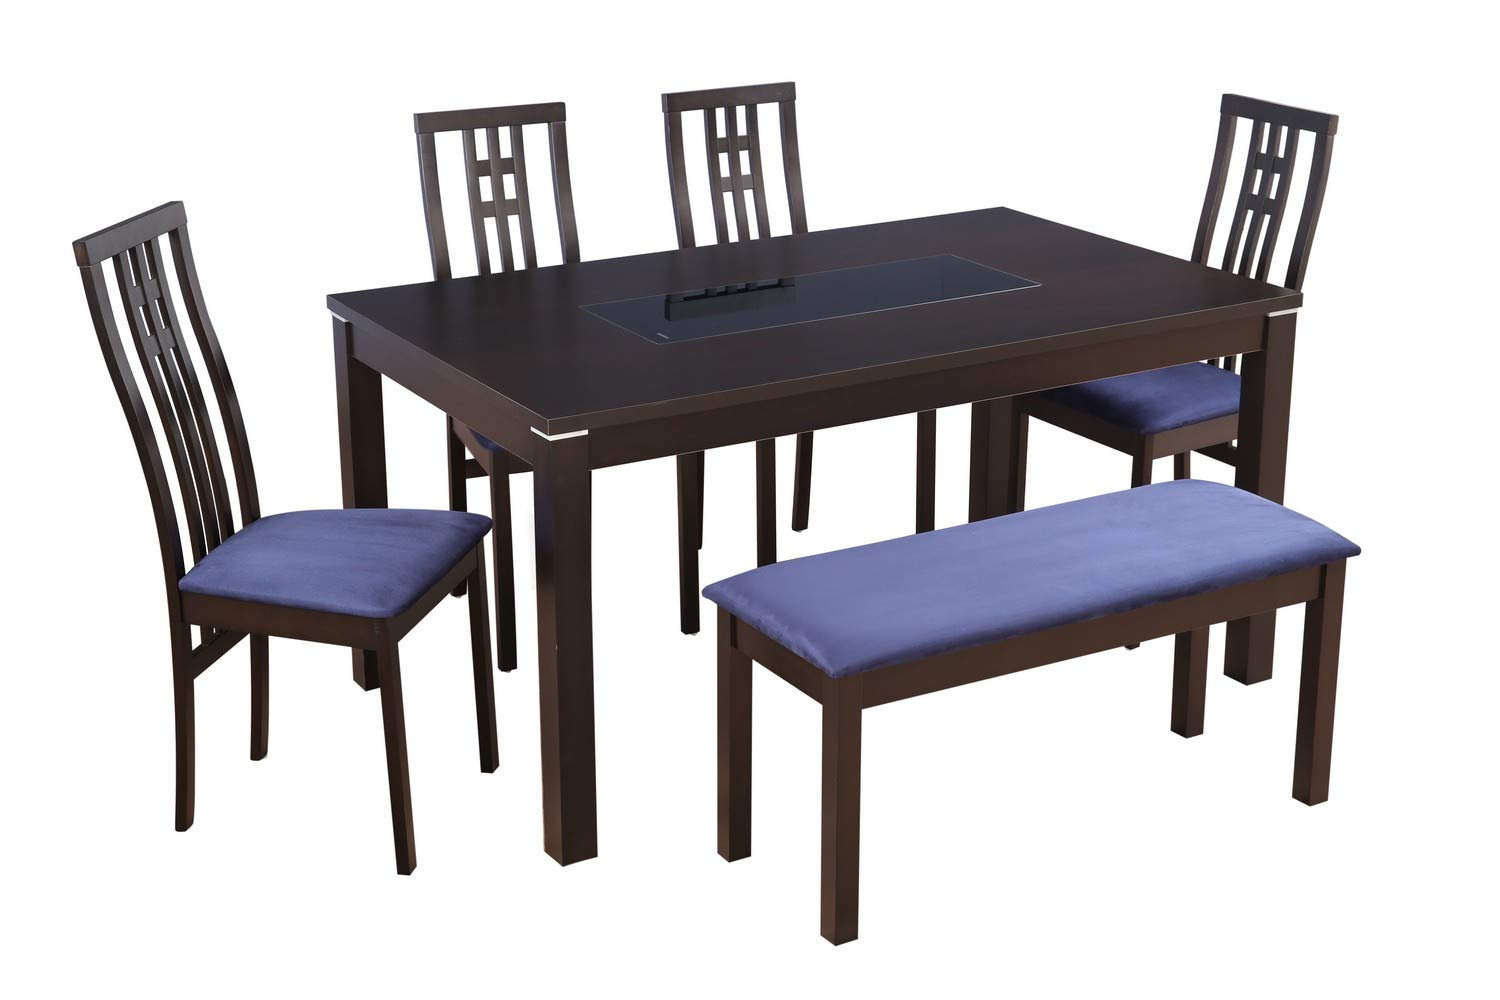 HomeTown Daiton Rubber Wood + Glass Six Seater Dining Set in